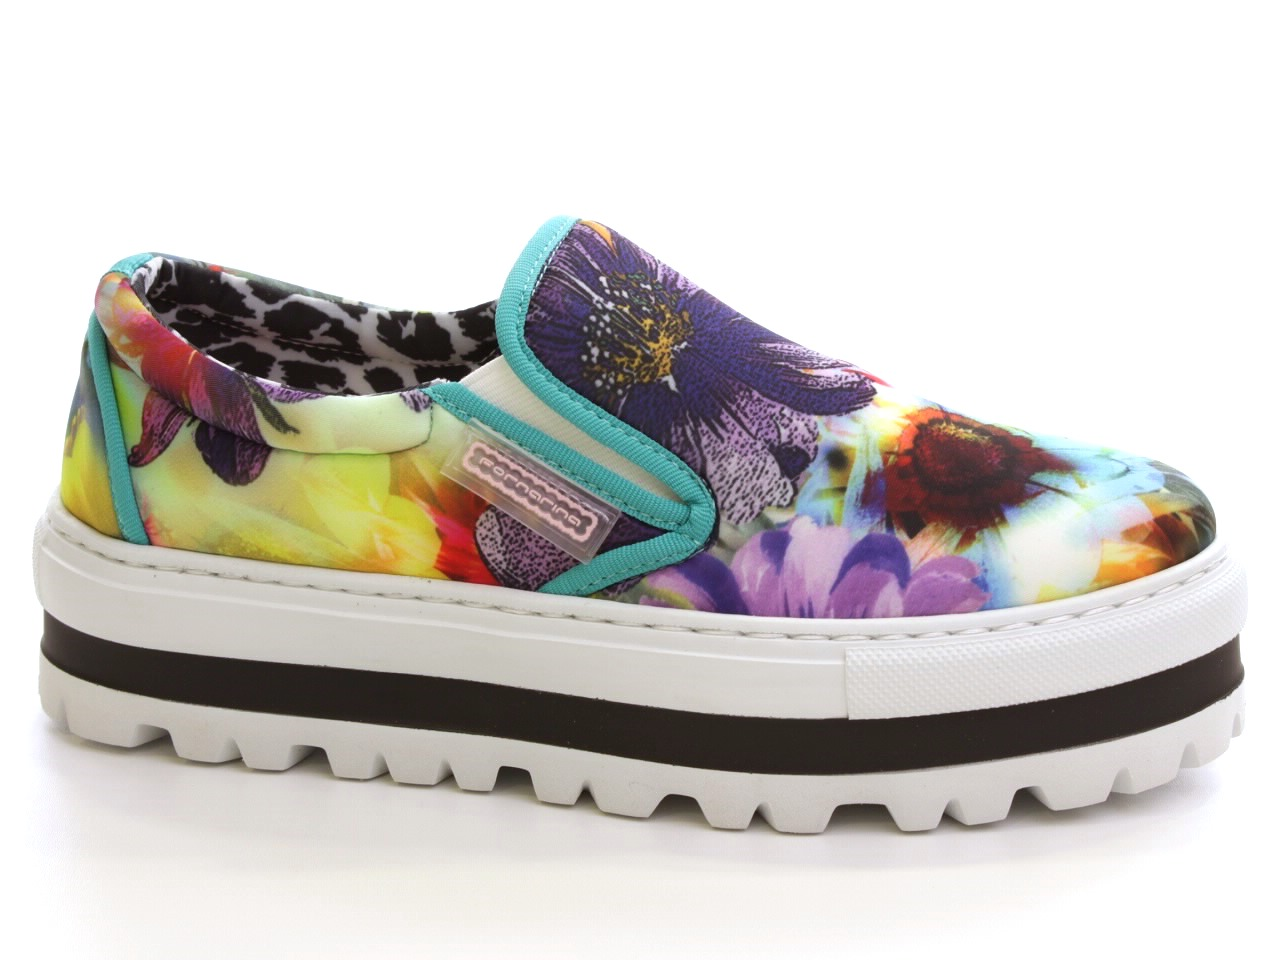 Sneakers and Espadrilles Fornarina - 354 8934 LAC66